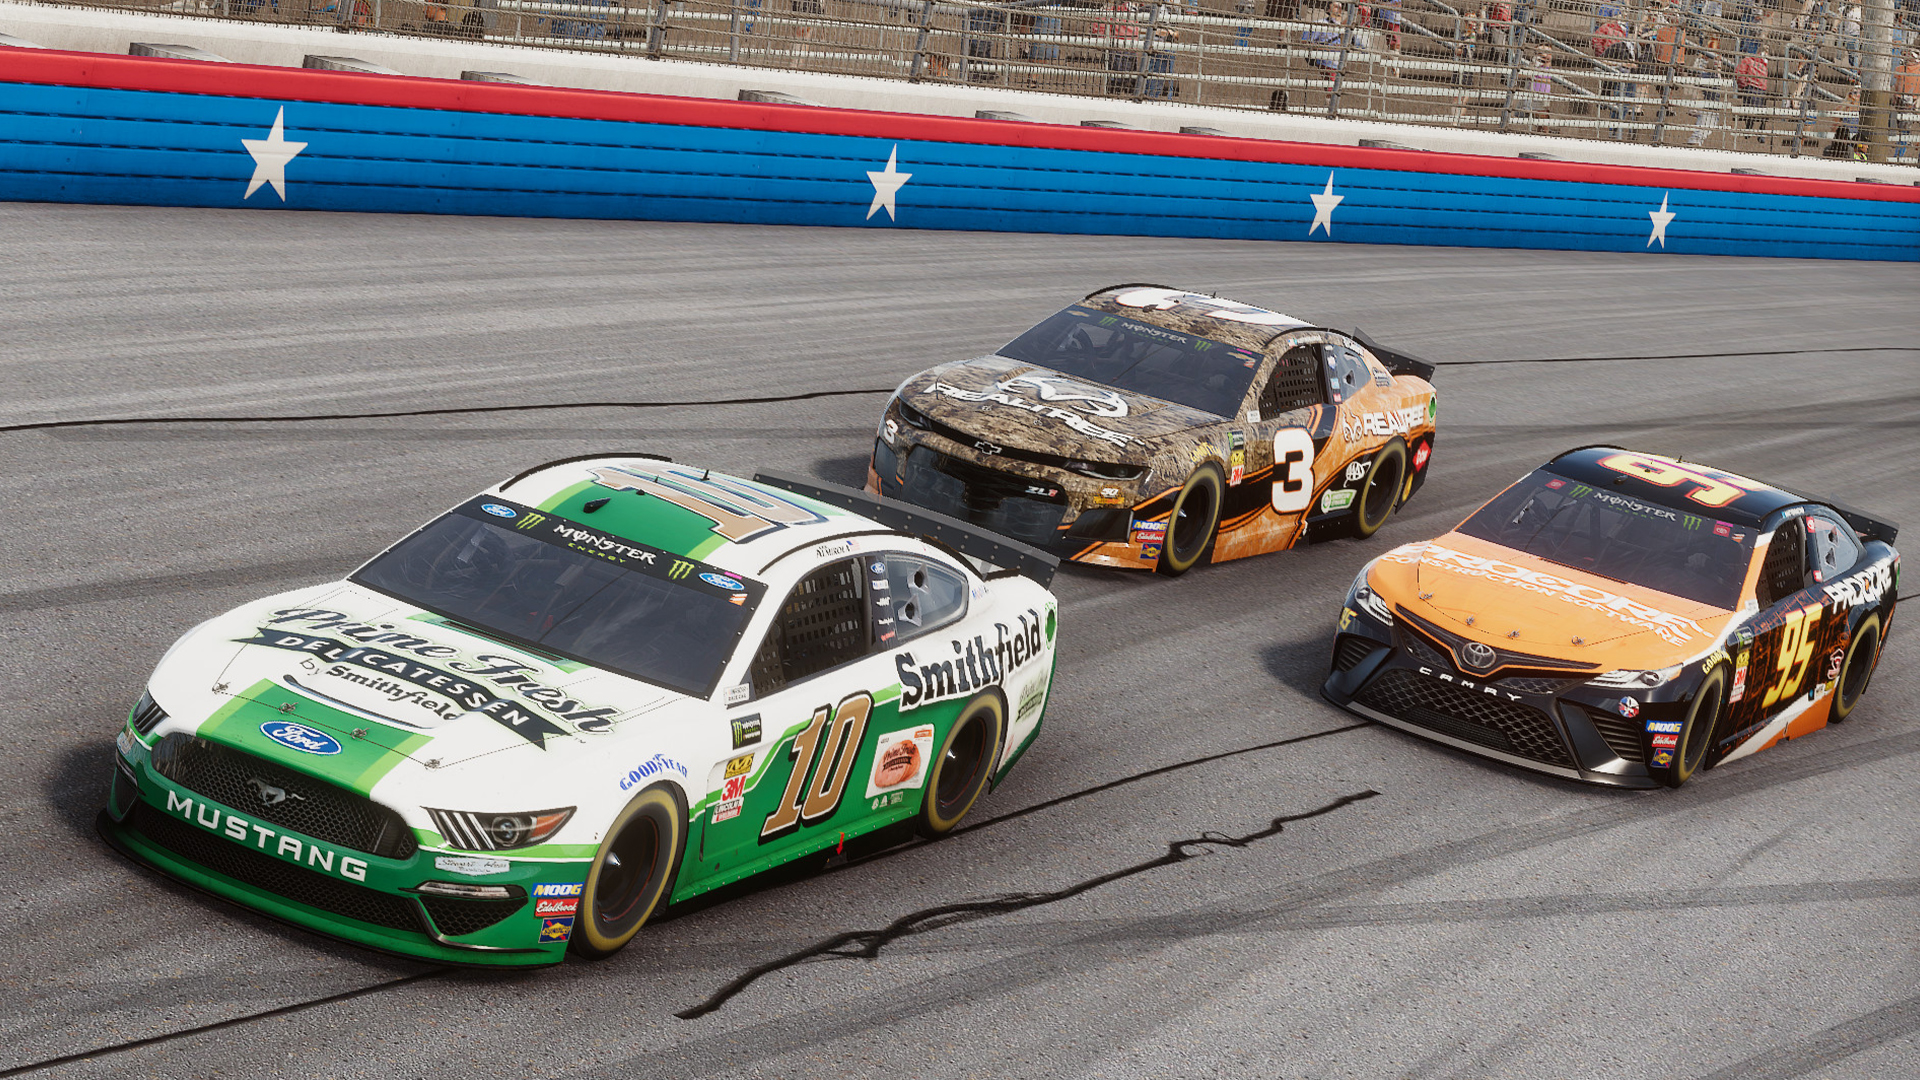 With live sports on hiatus, NASCAR esports get ridiculous TV ratings